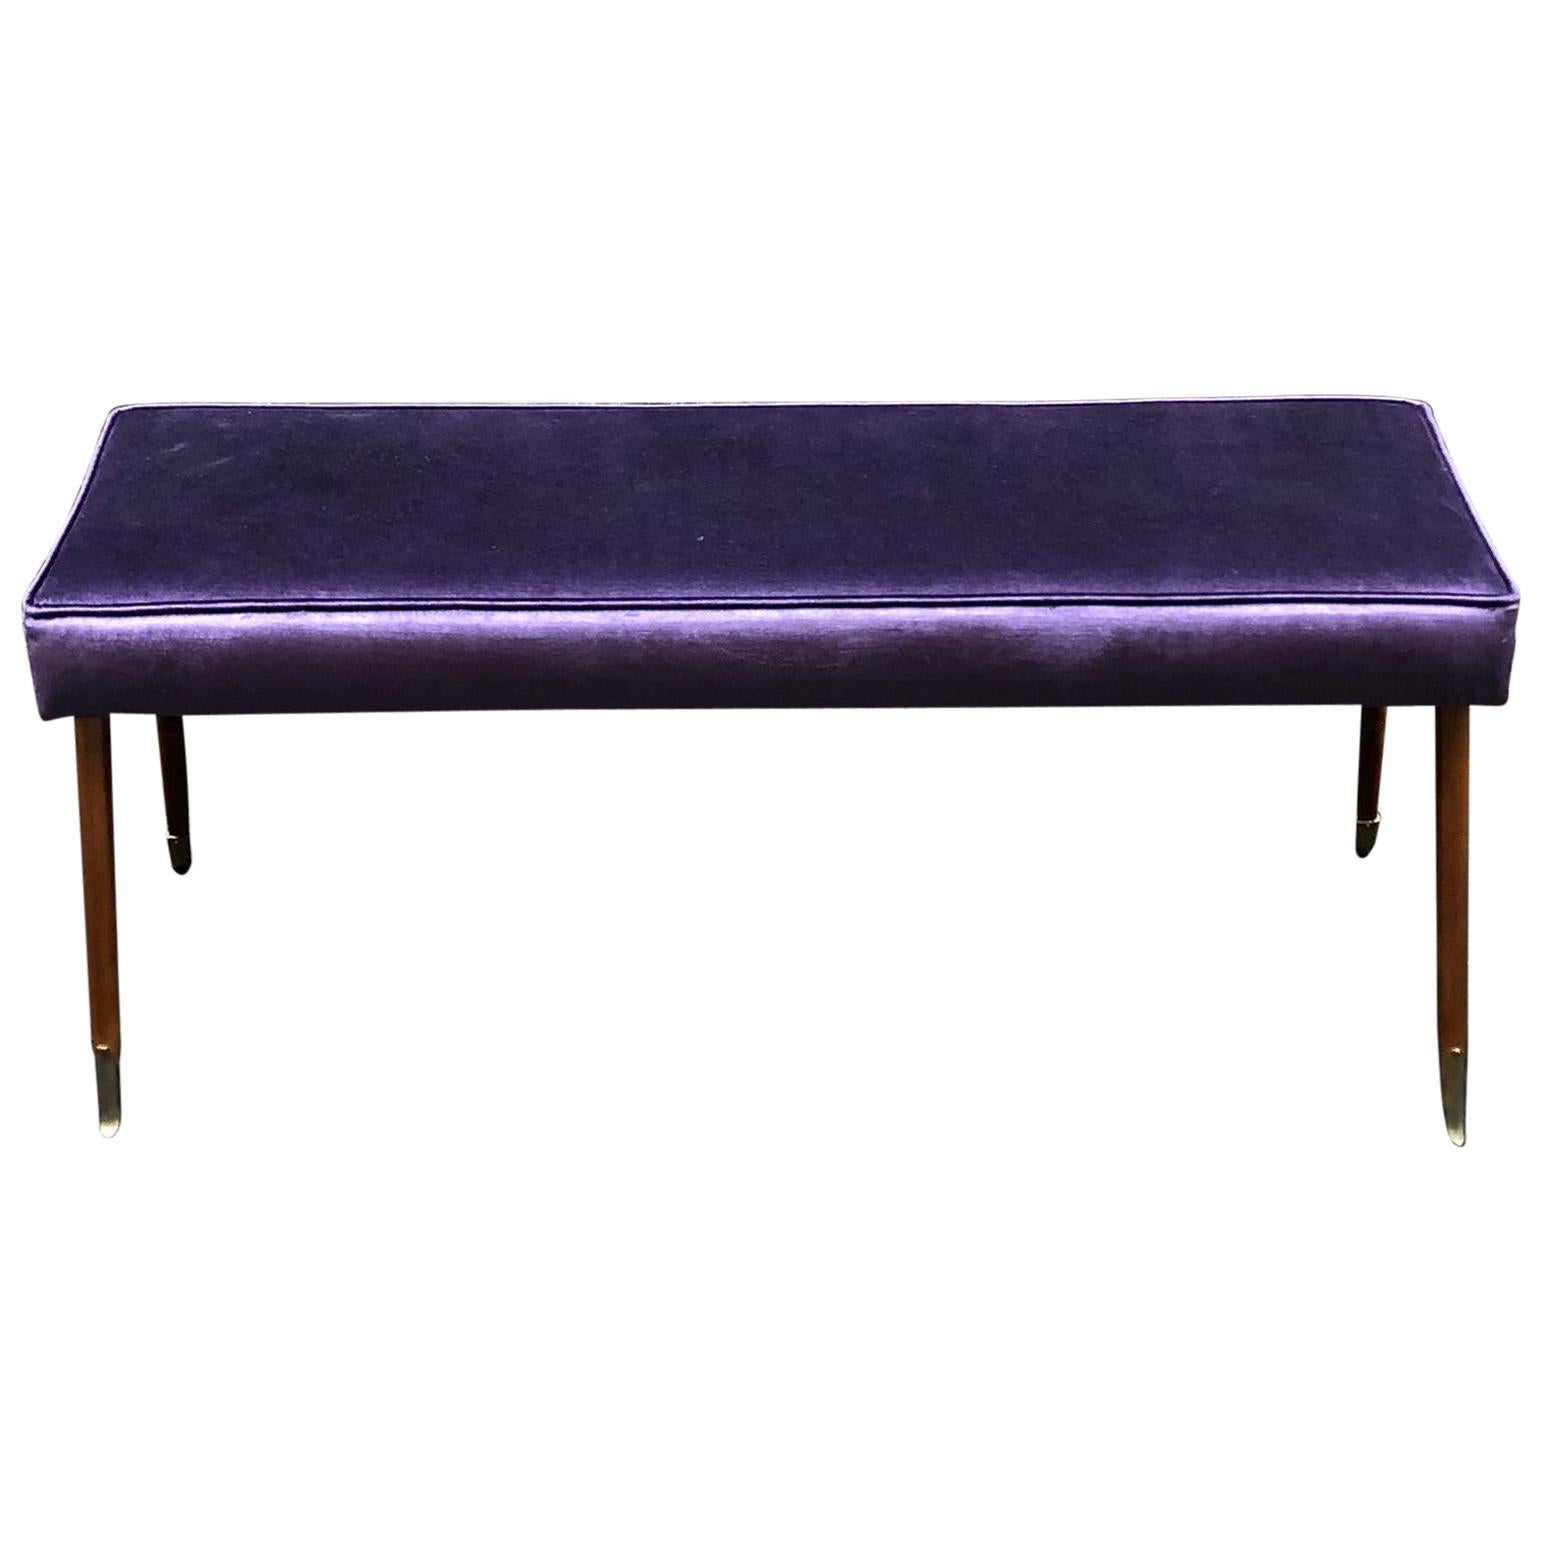 Bright Purple Velvet and Brass Ending Legs Bench from Italy from 1950s